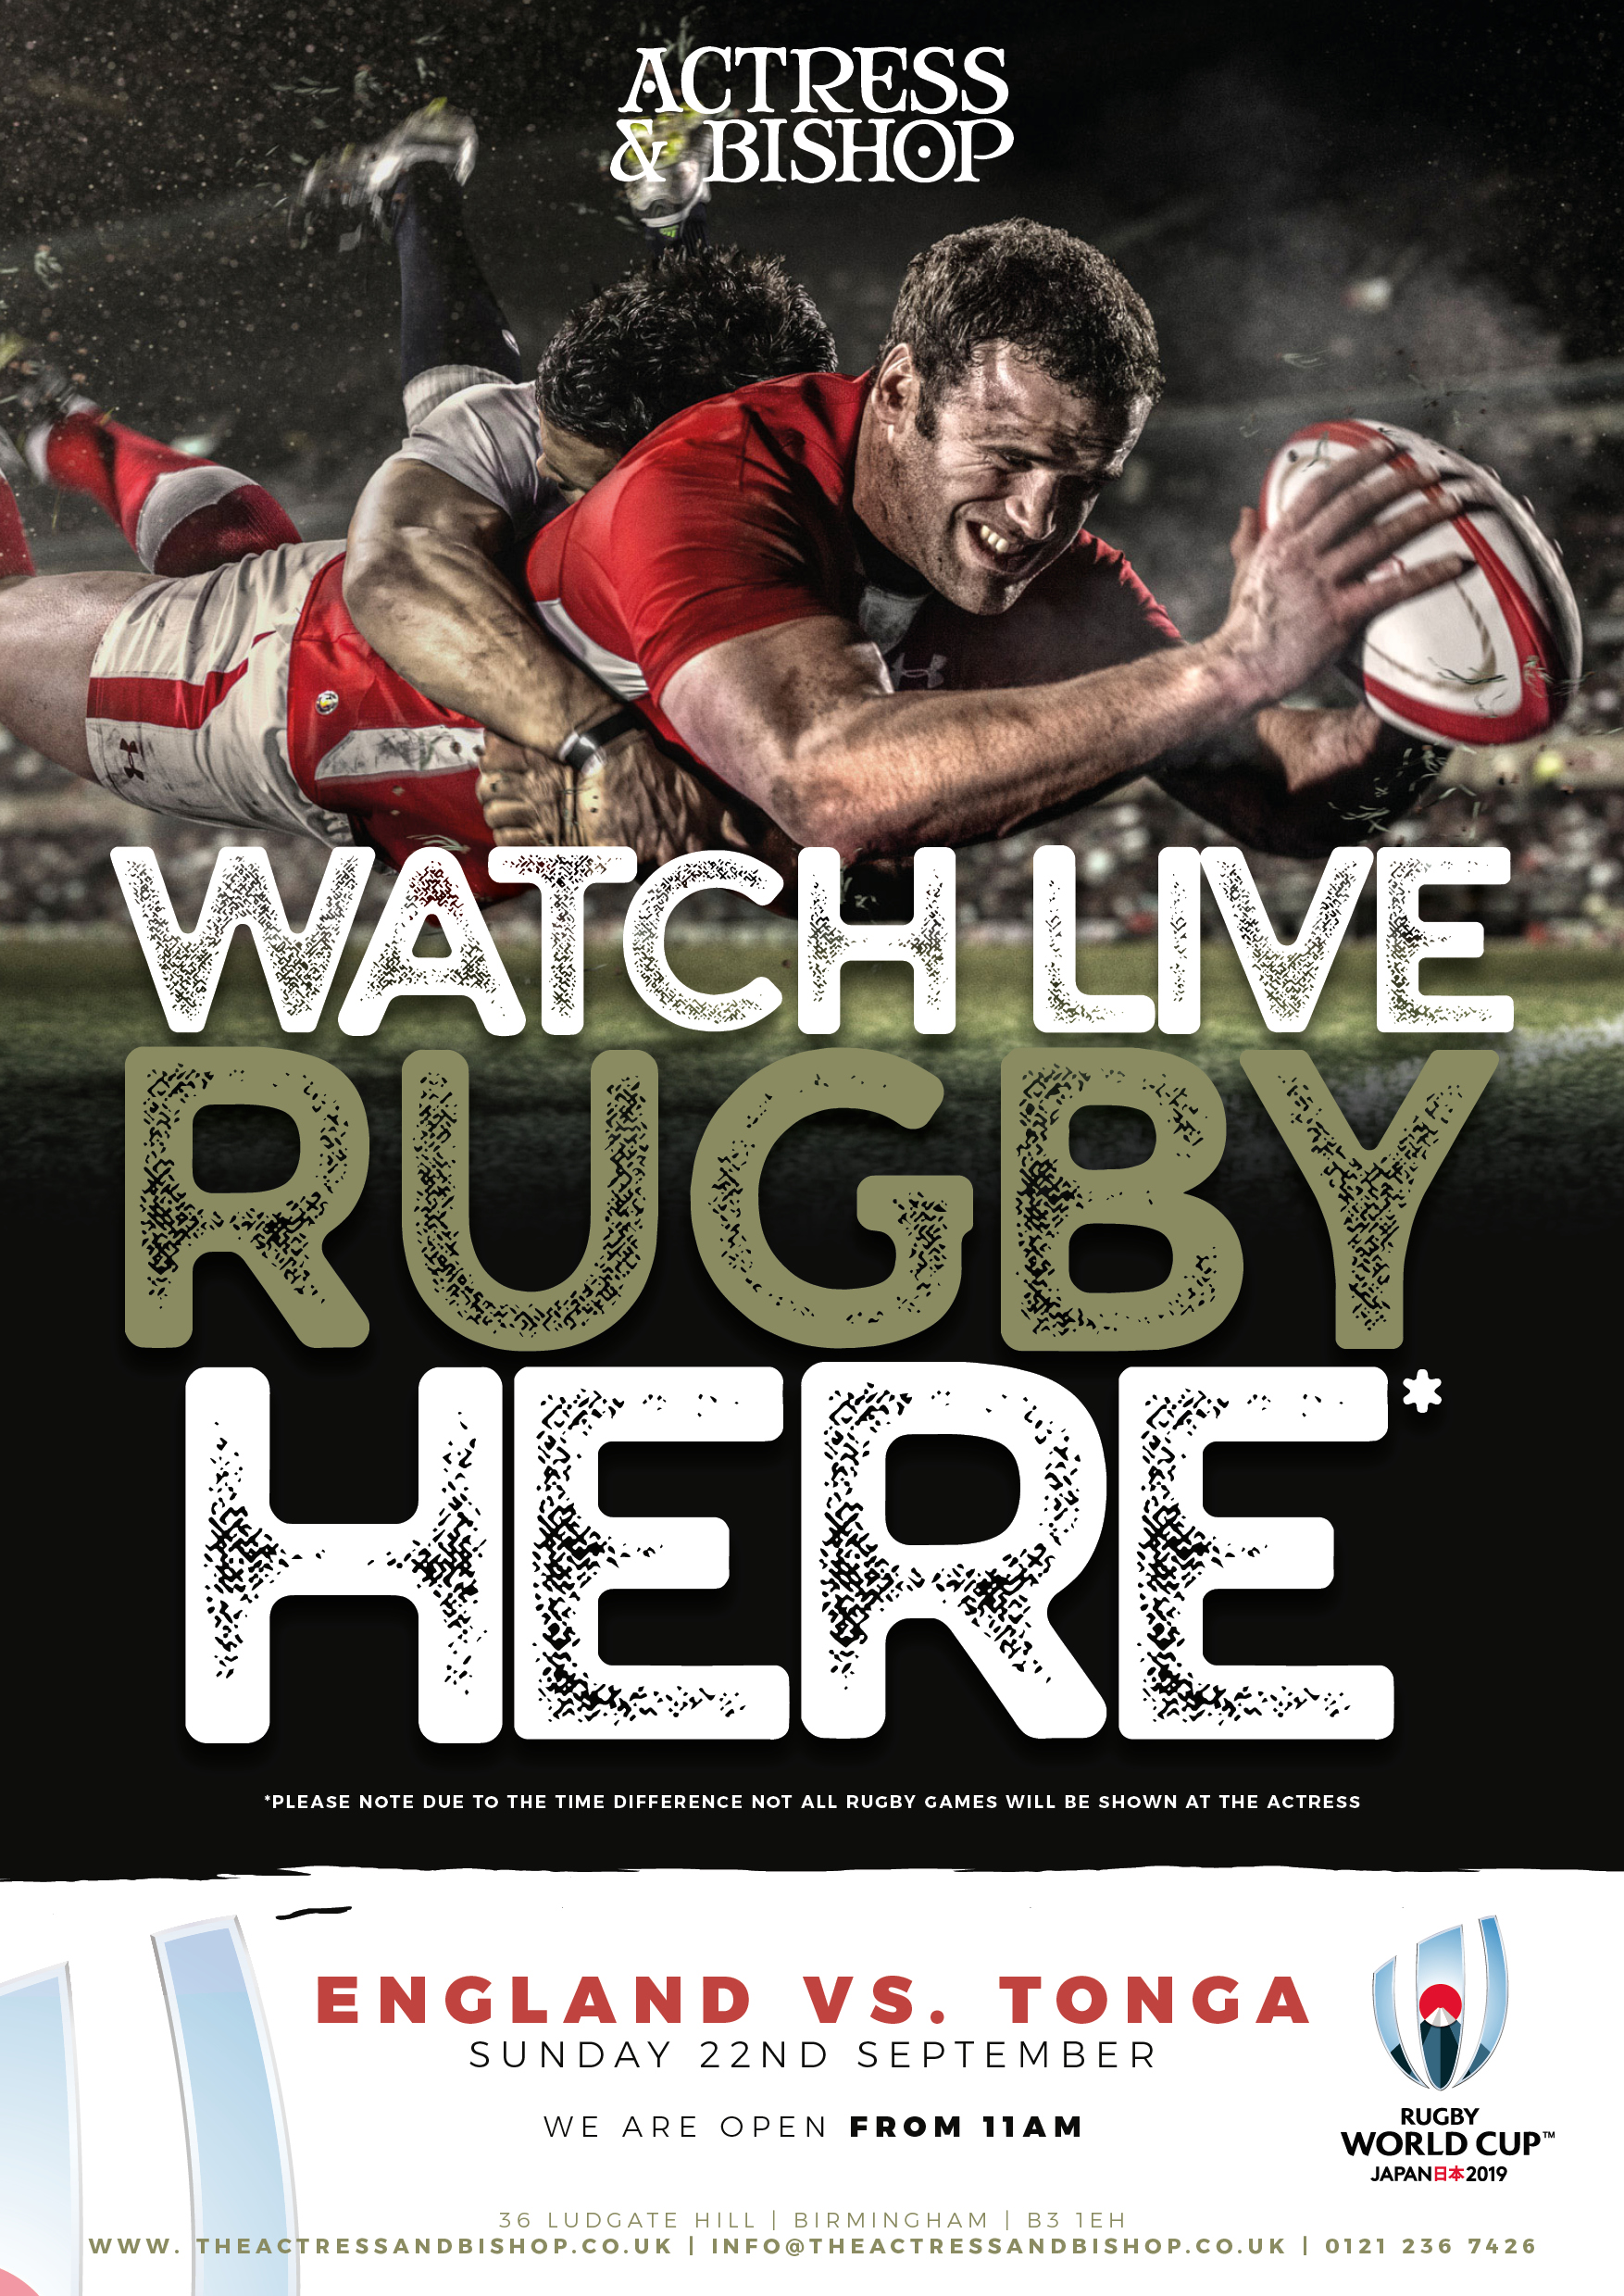 RUGBY WORLD CUP SHOWN HERE!